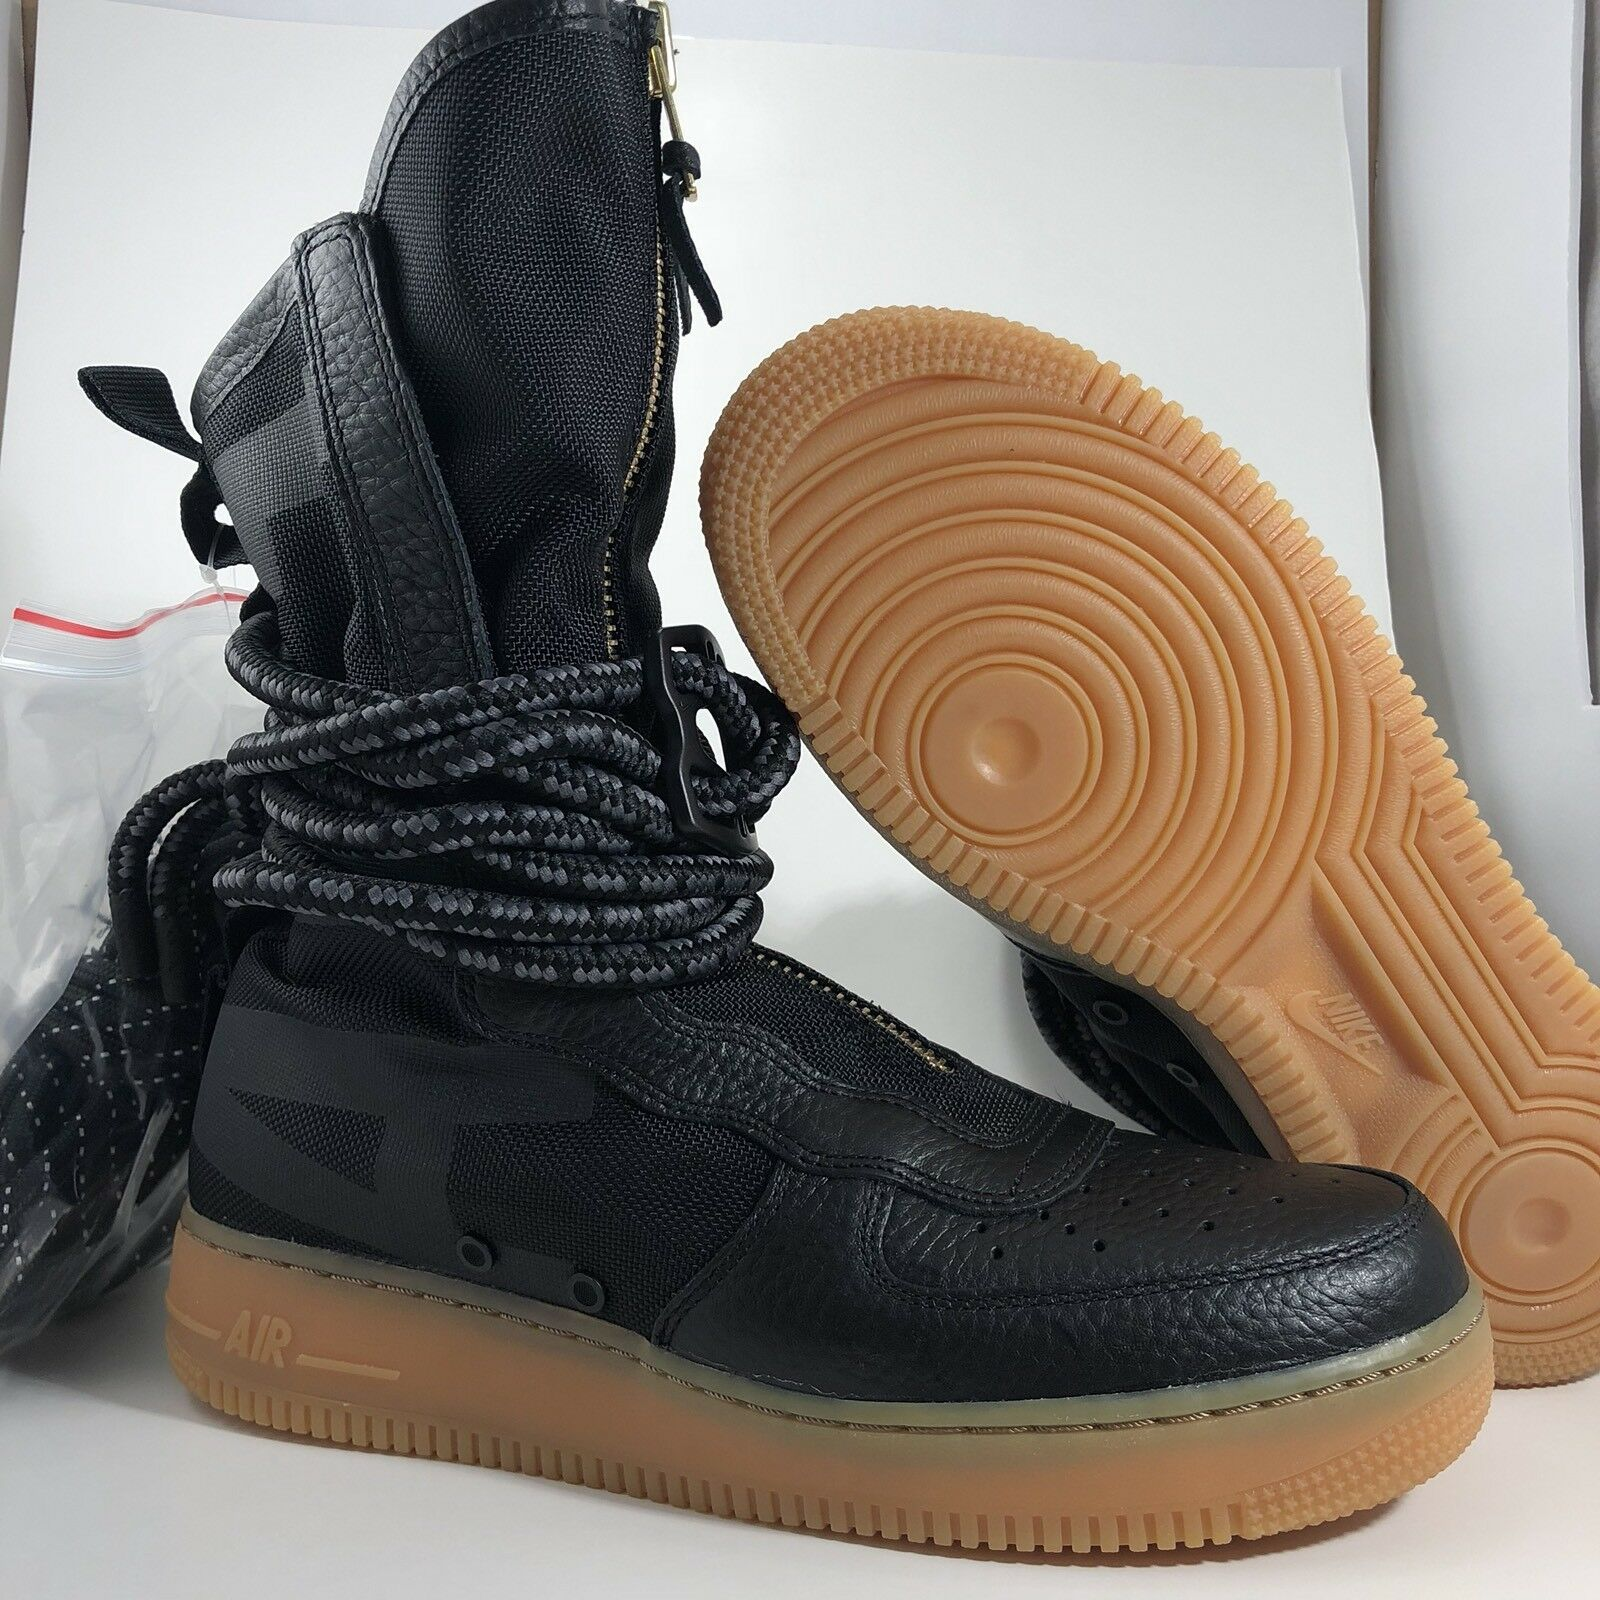 Nike sf af1 ciao nero / gomma air force force air 1 stivali Uomo dimensioni 9.5 (aa1128 001) ac4792